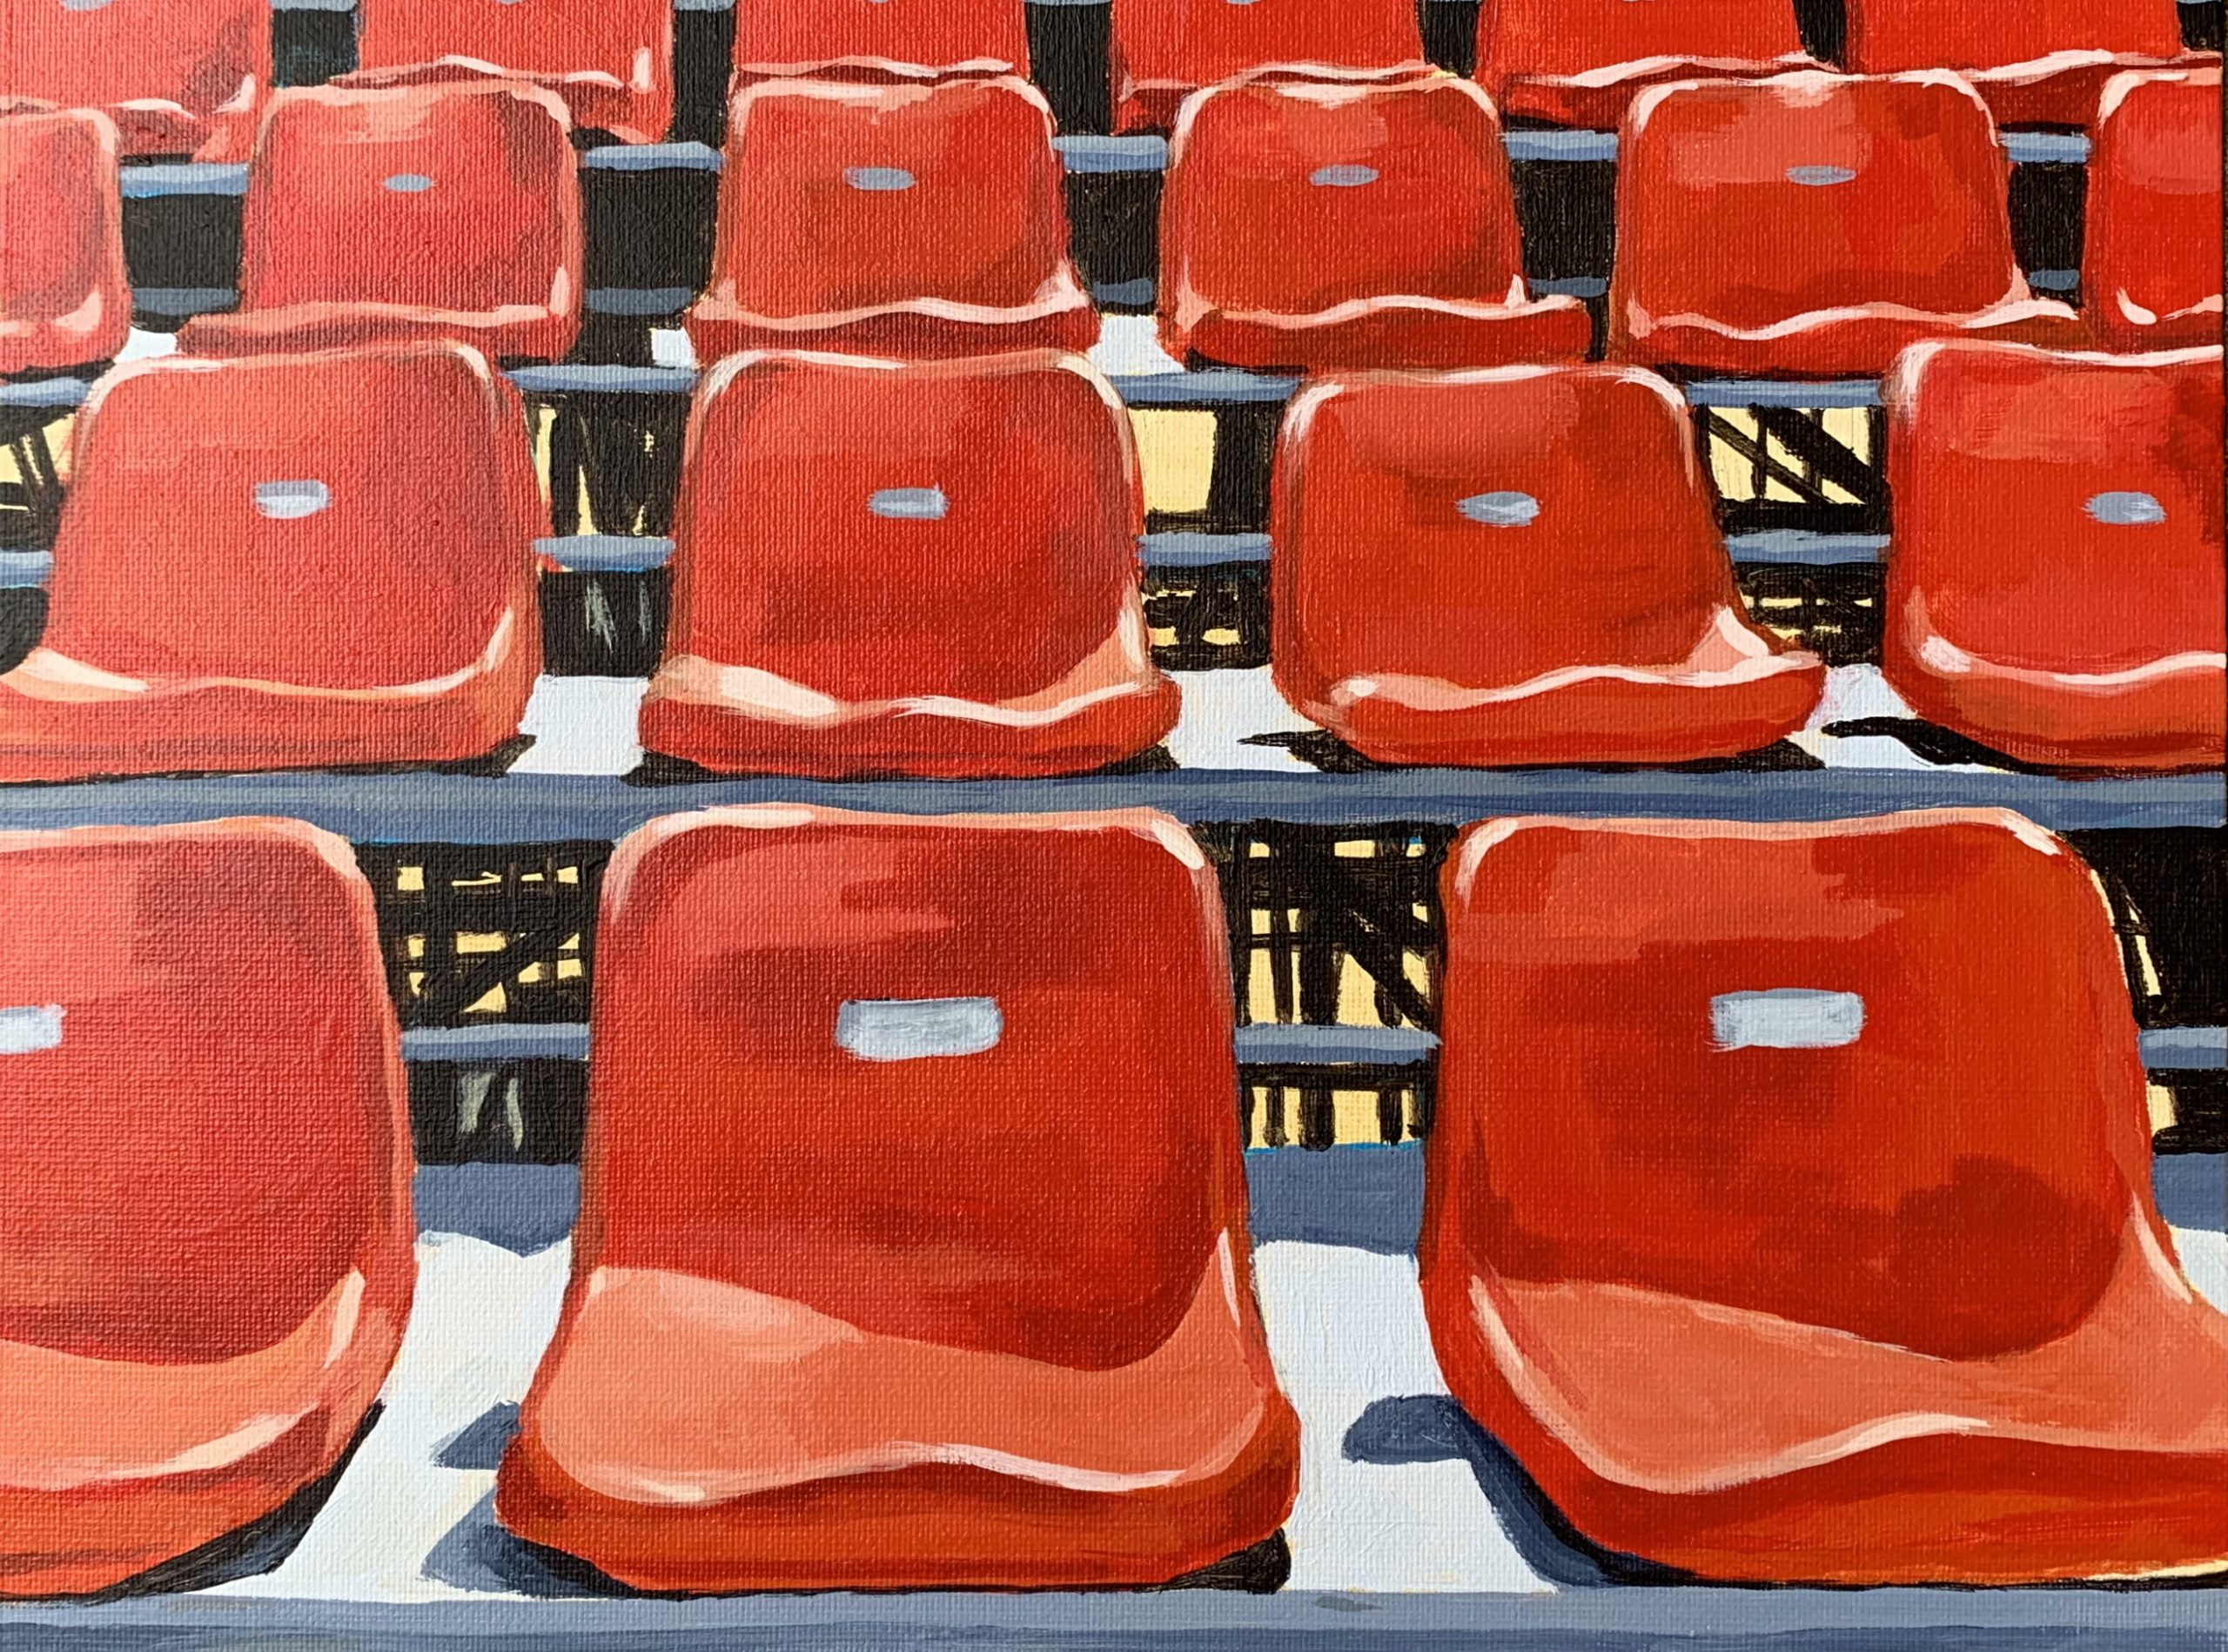 empty stadium seats, acrylic painting, original artwork for sale, Austin artist, red seats, Leigh Ann Torres